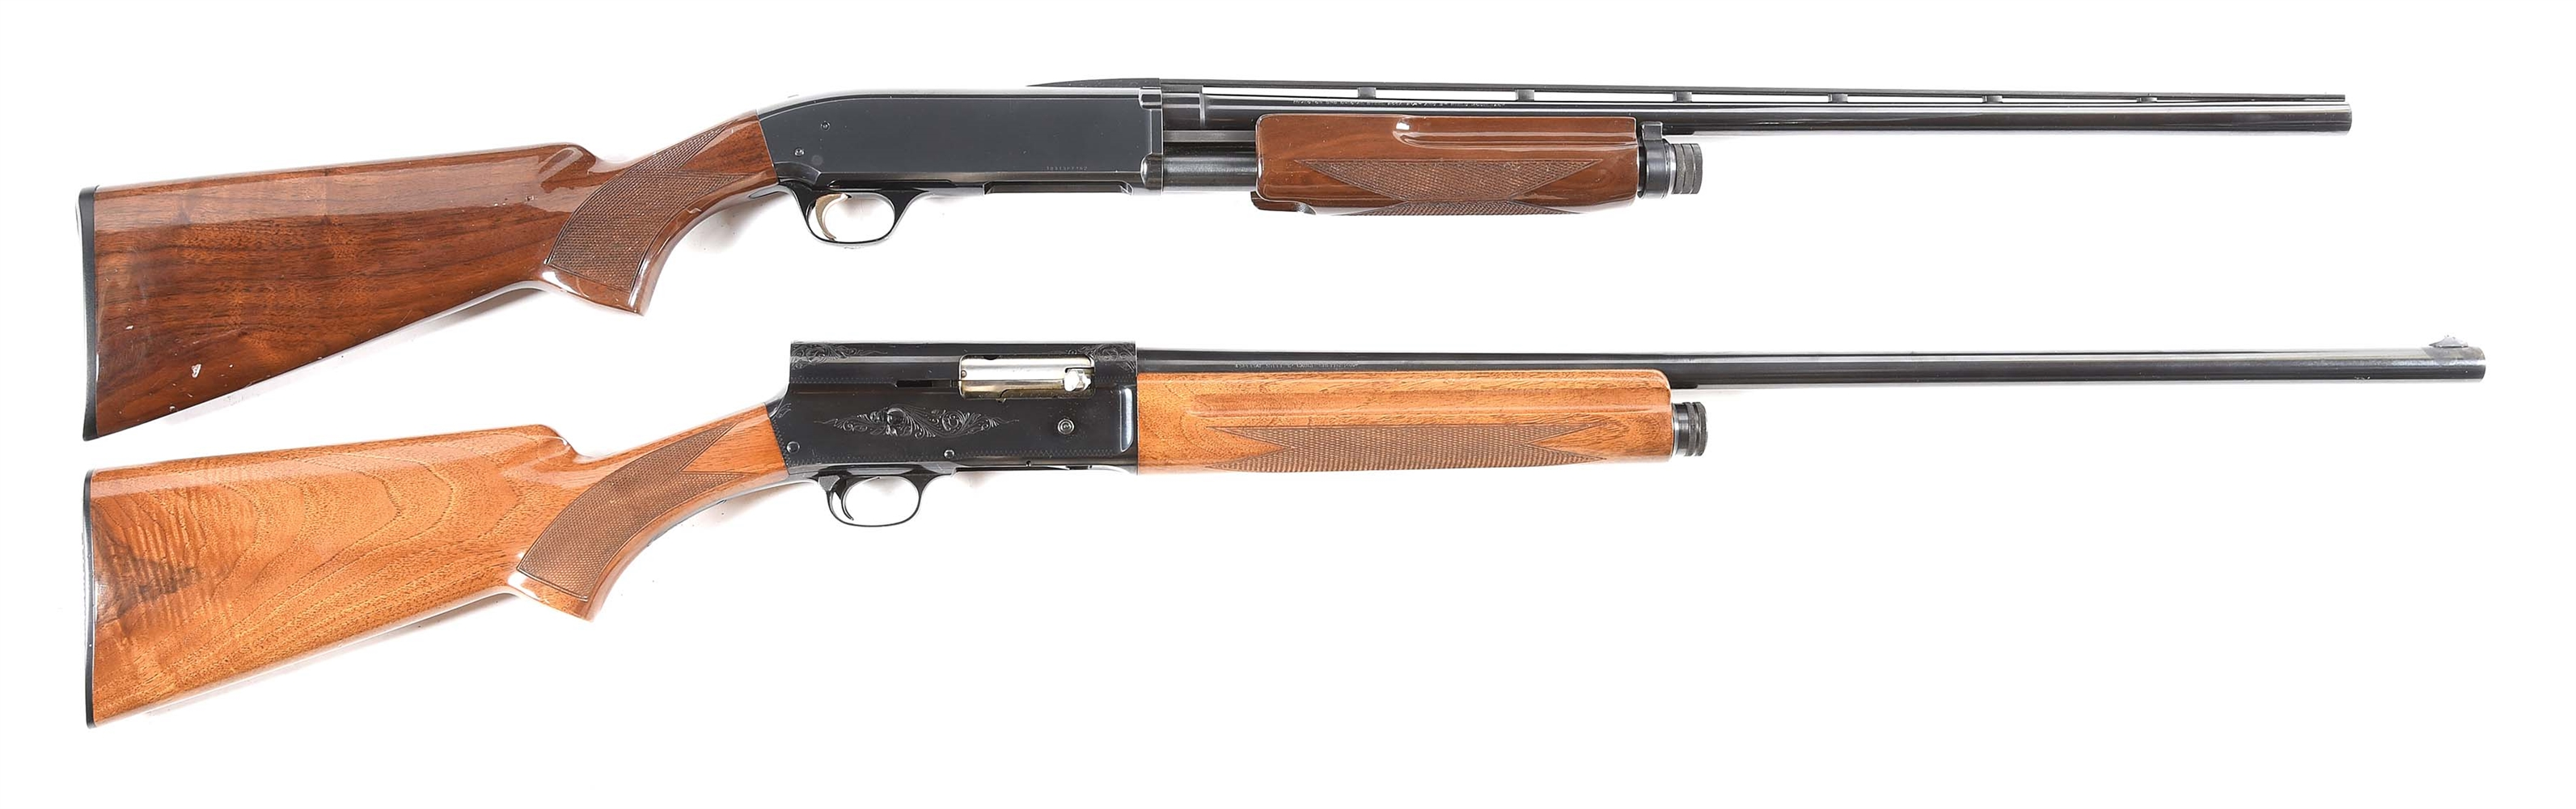 (M) LOT OF TWO BROWNING SHOTGUNS: BPS SLIDE ACTION AND MODEL 5 SEMI AUTOMATIC